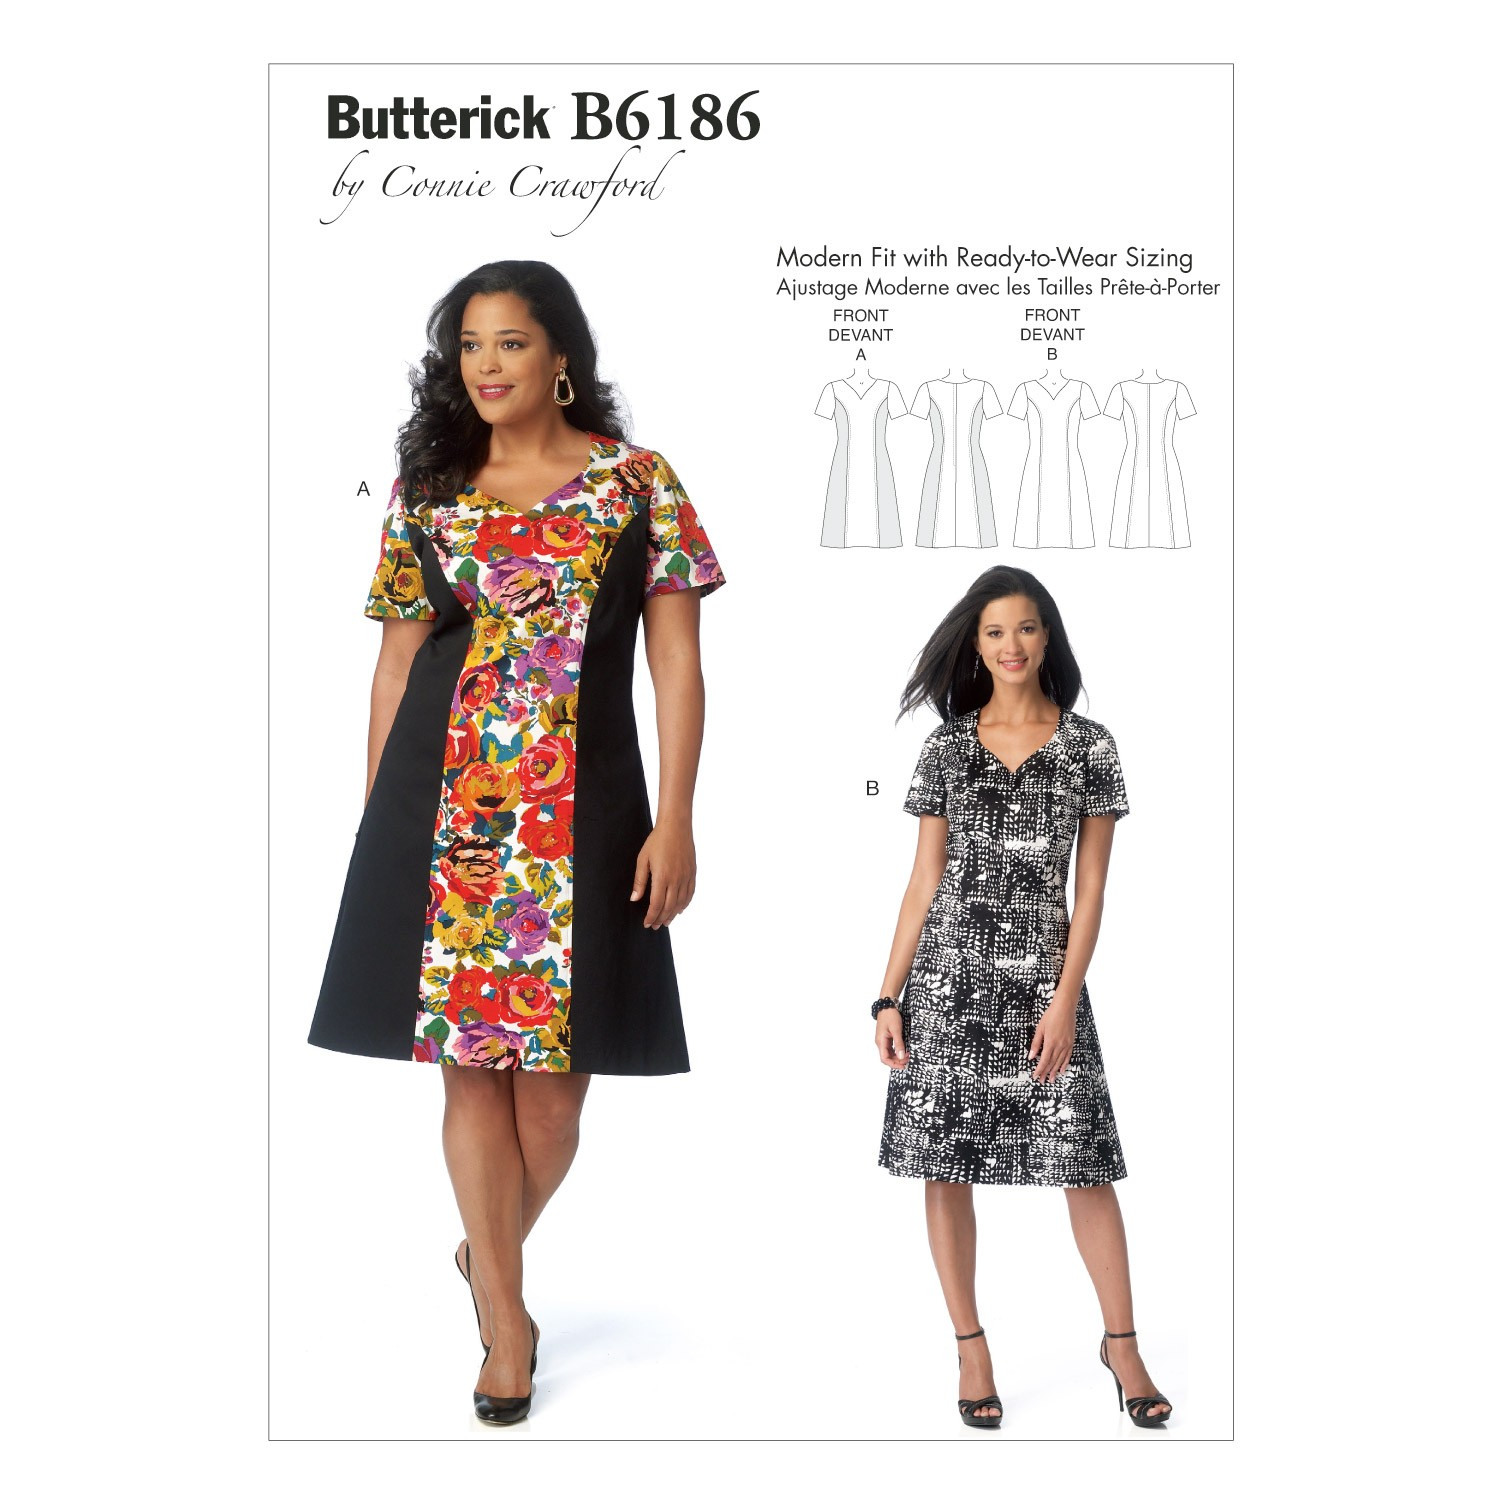 Butterick Sewing Pattern 6186 Misses' Semi Fitted Dress